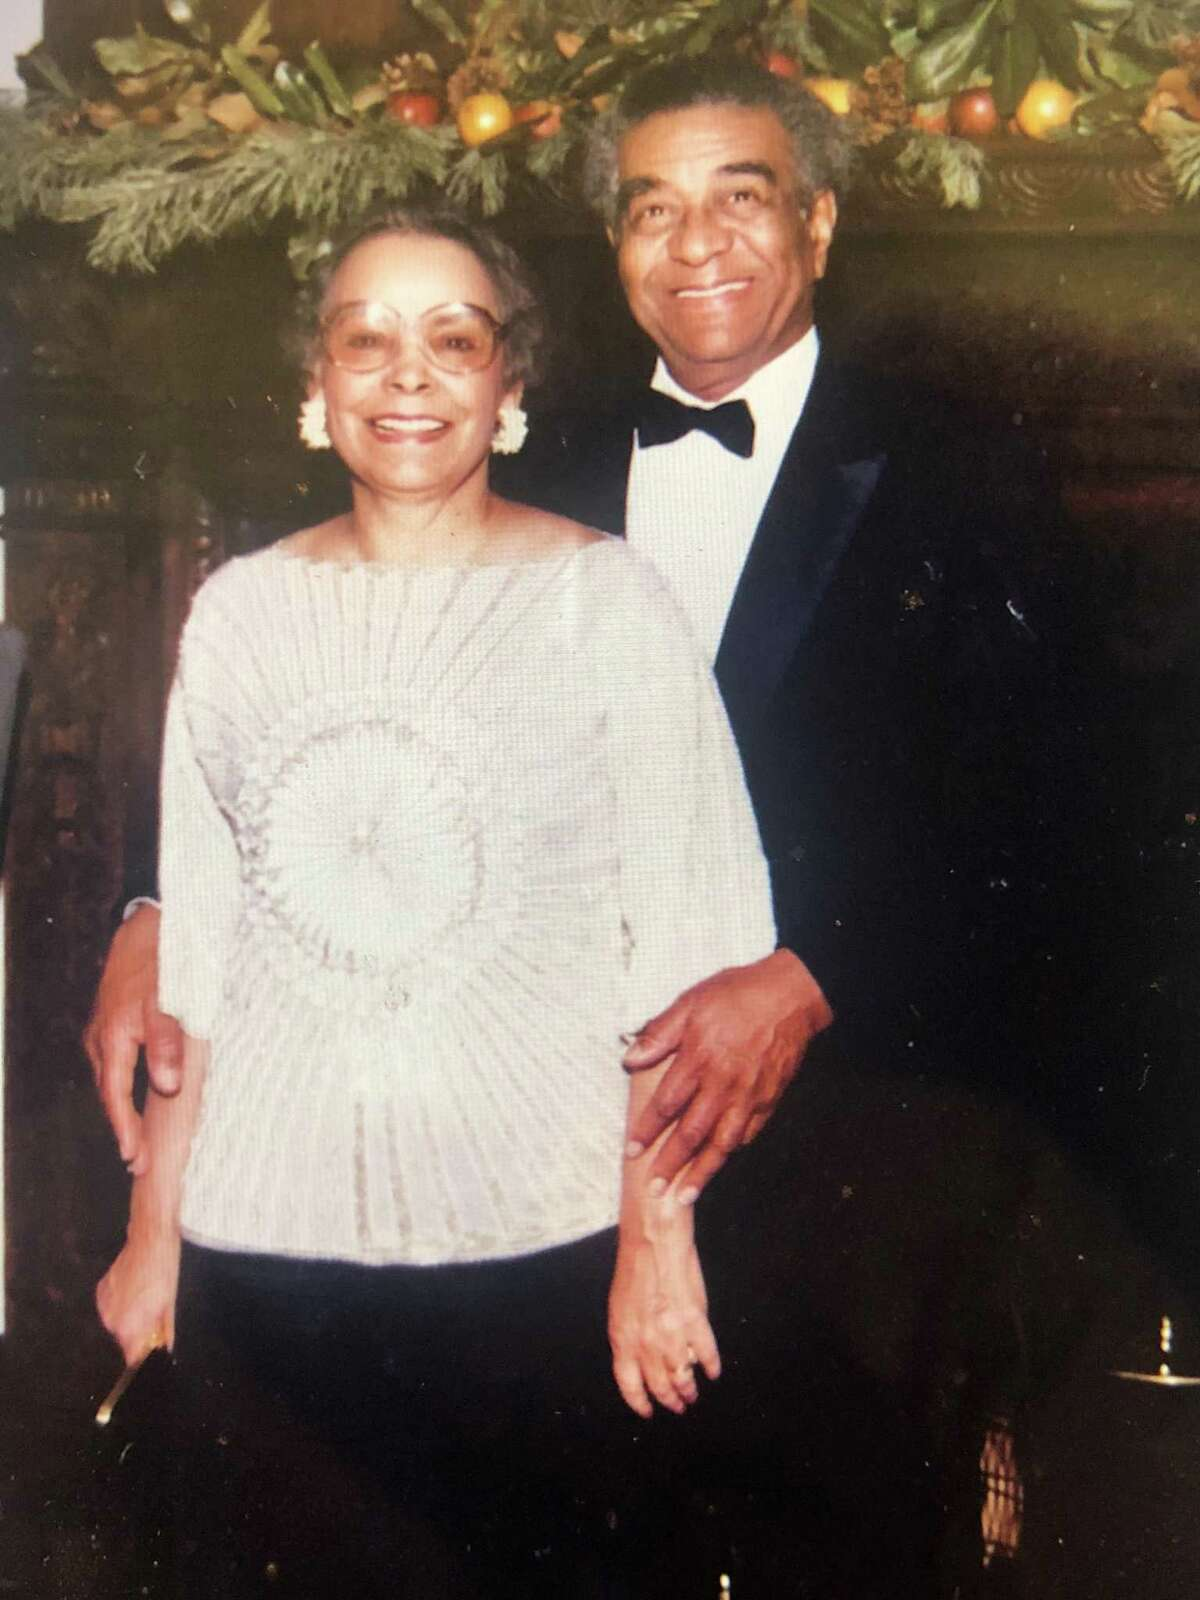 Hazel Biggers, widow of acclaimed artist John Biggers, died at her home in Fayetteville, N.C. on July 3, 2021. She was 95 years old.